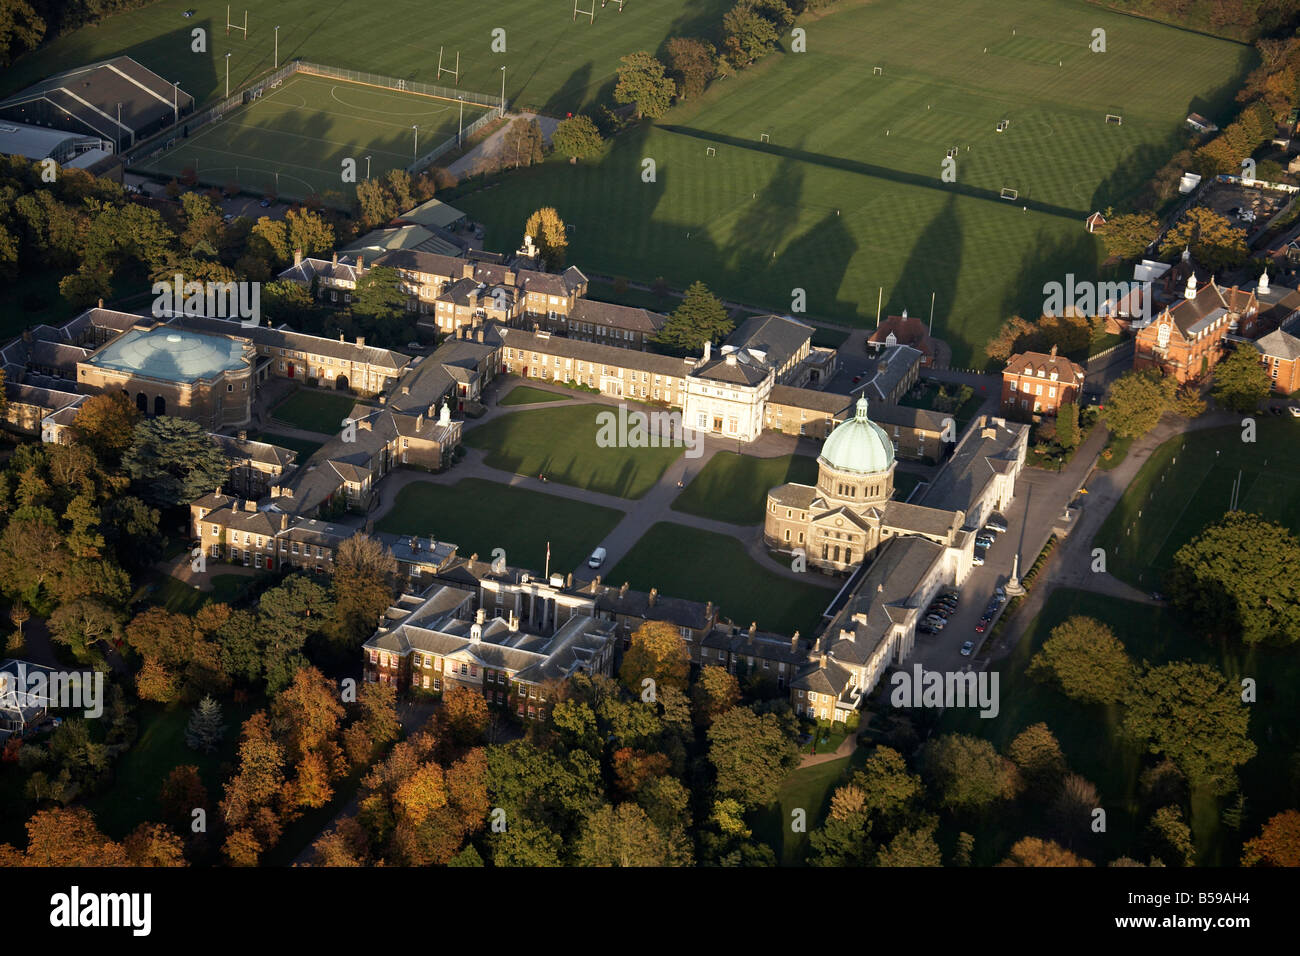 Aerial view north east of Haileybury College playing fields trees Hertfordshire SG13 England UK - Stock Image